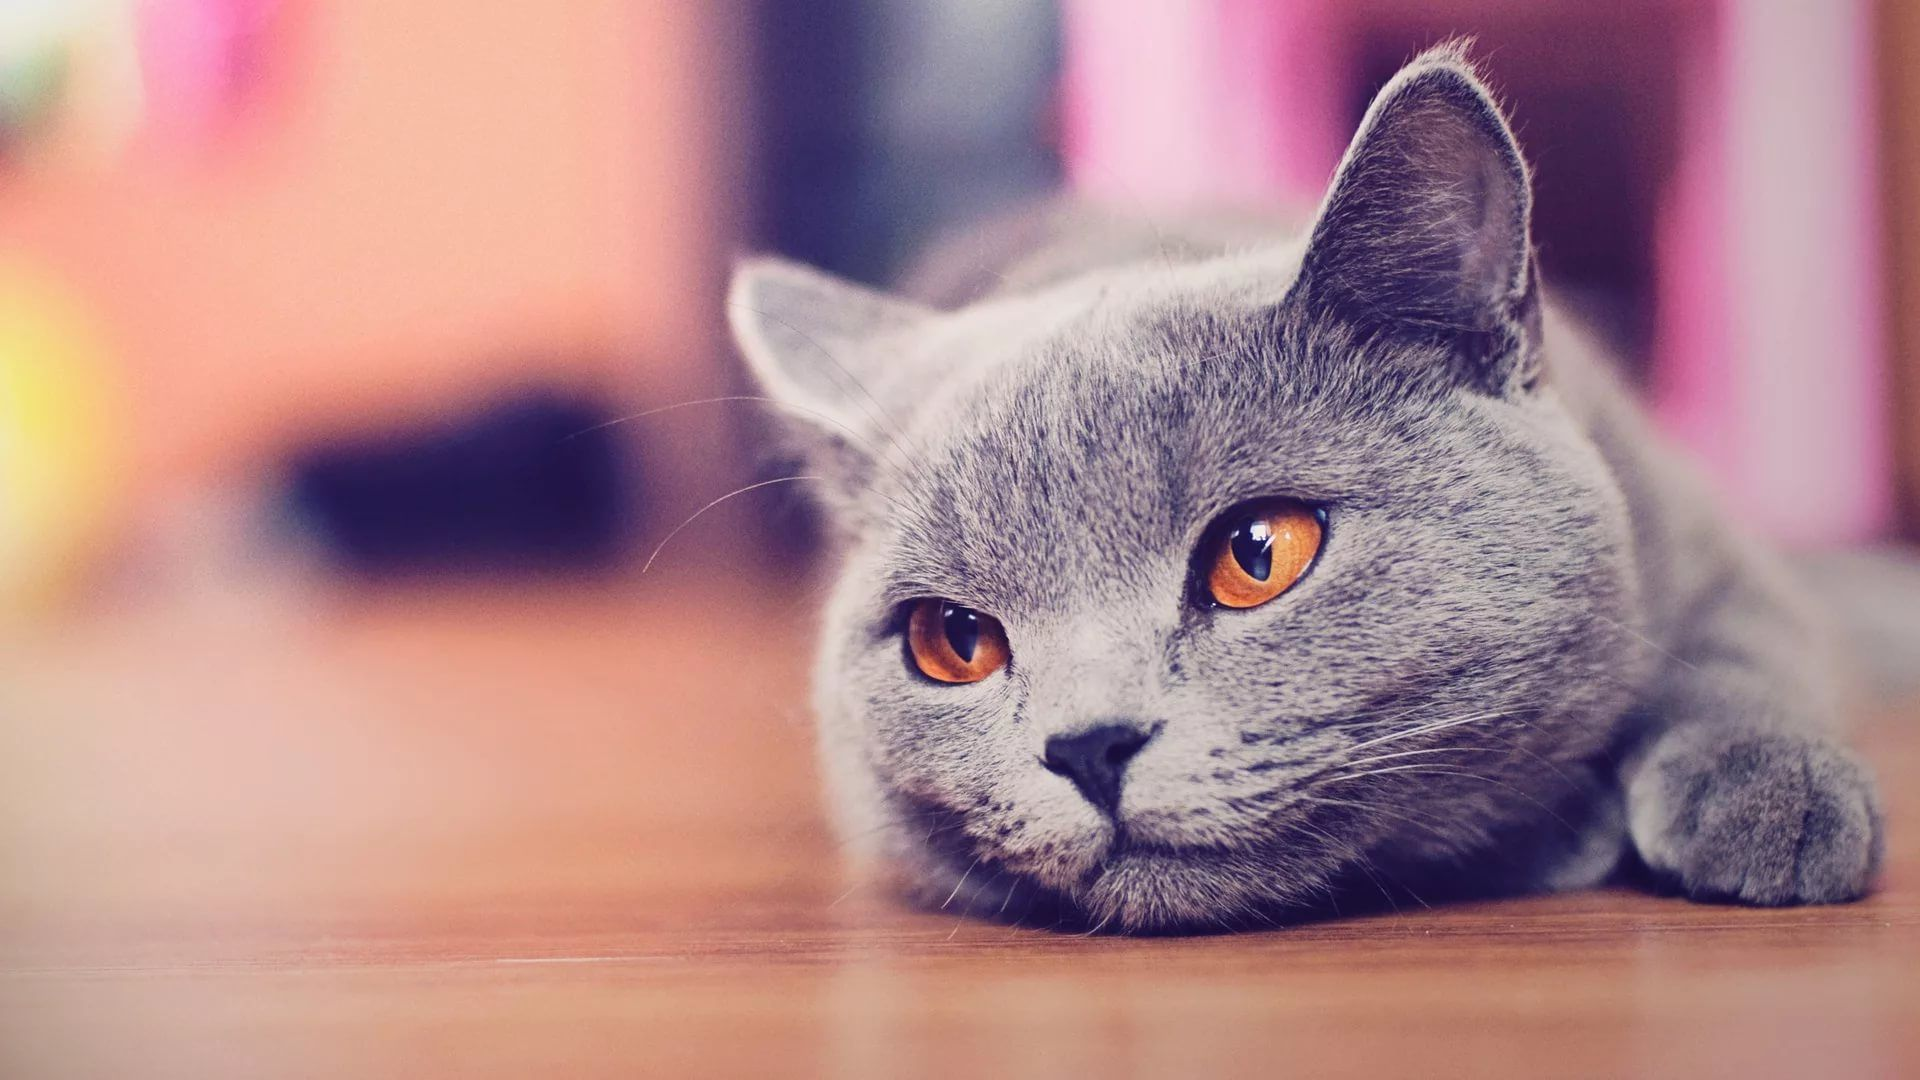 Lovely Cat download free wallpapers for pc in hd